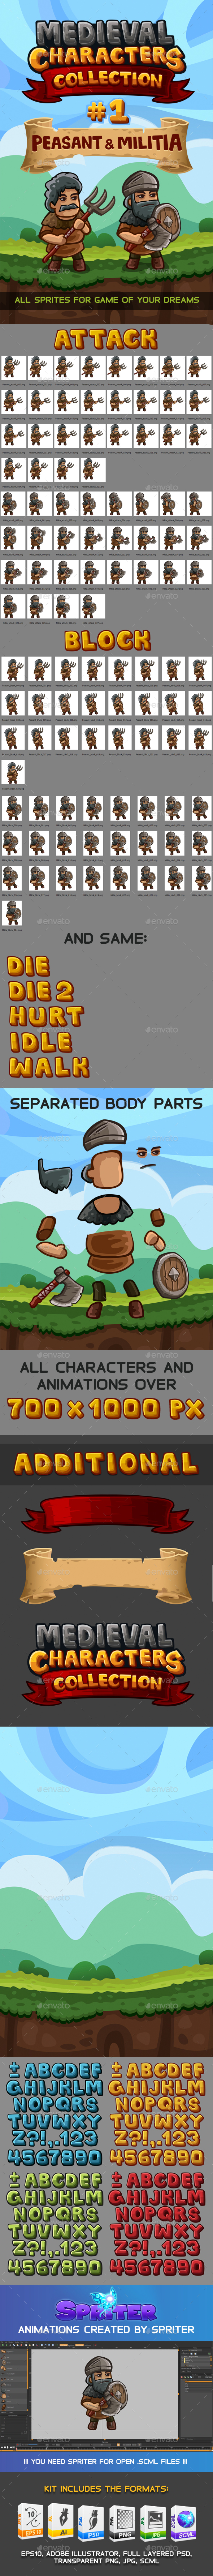 Medieval Game Sprites Characters Collection #1 - Sprites Game Assets